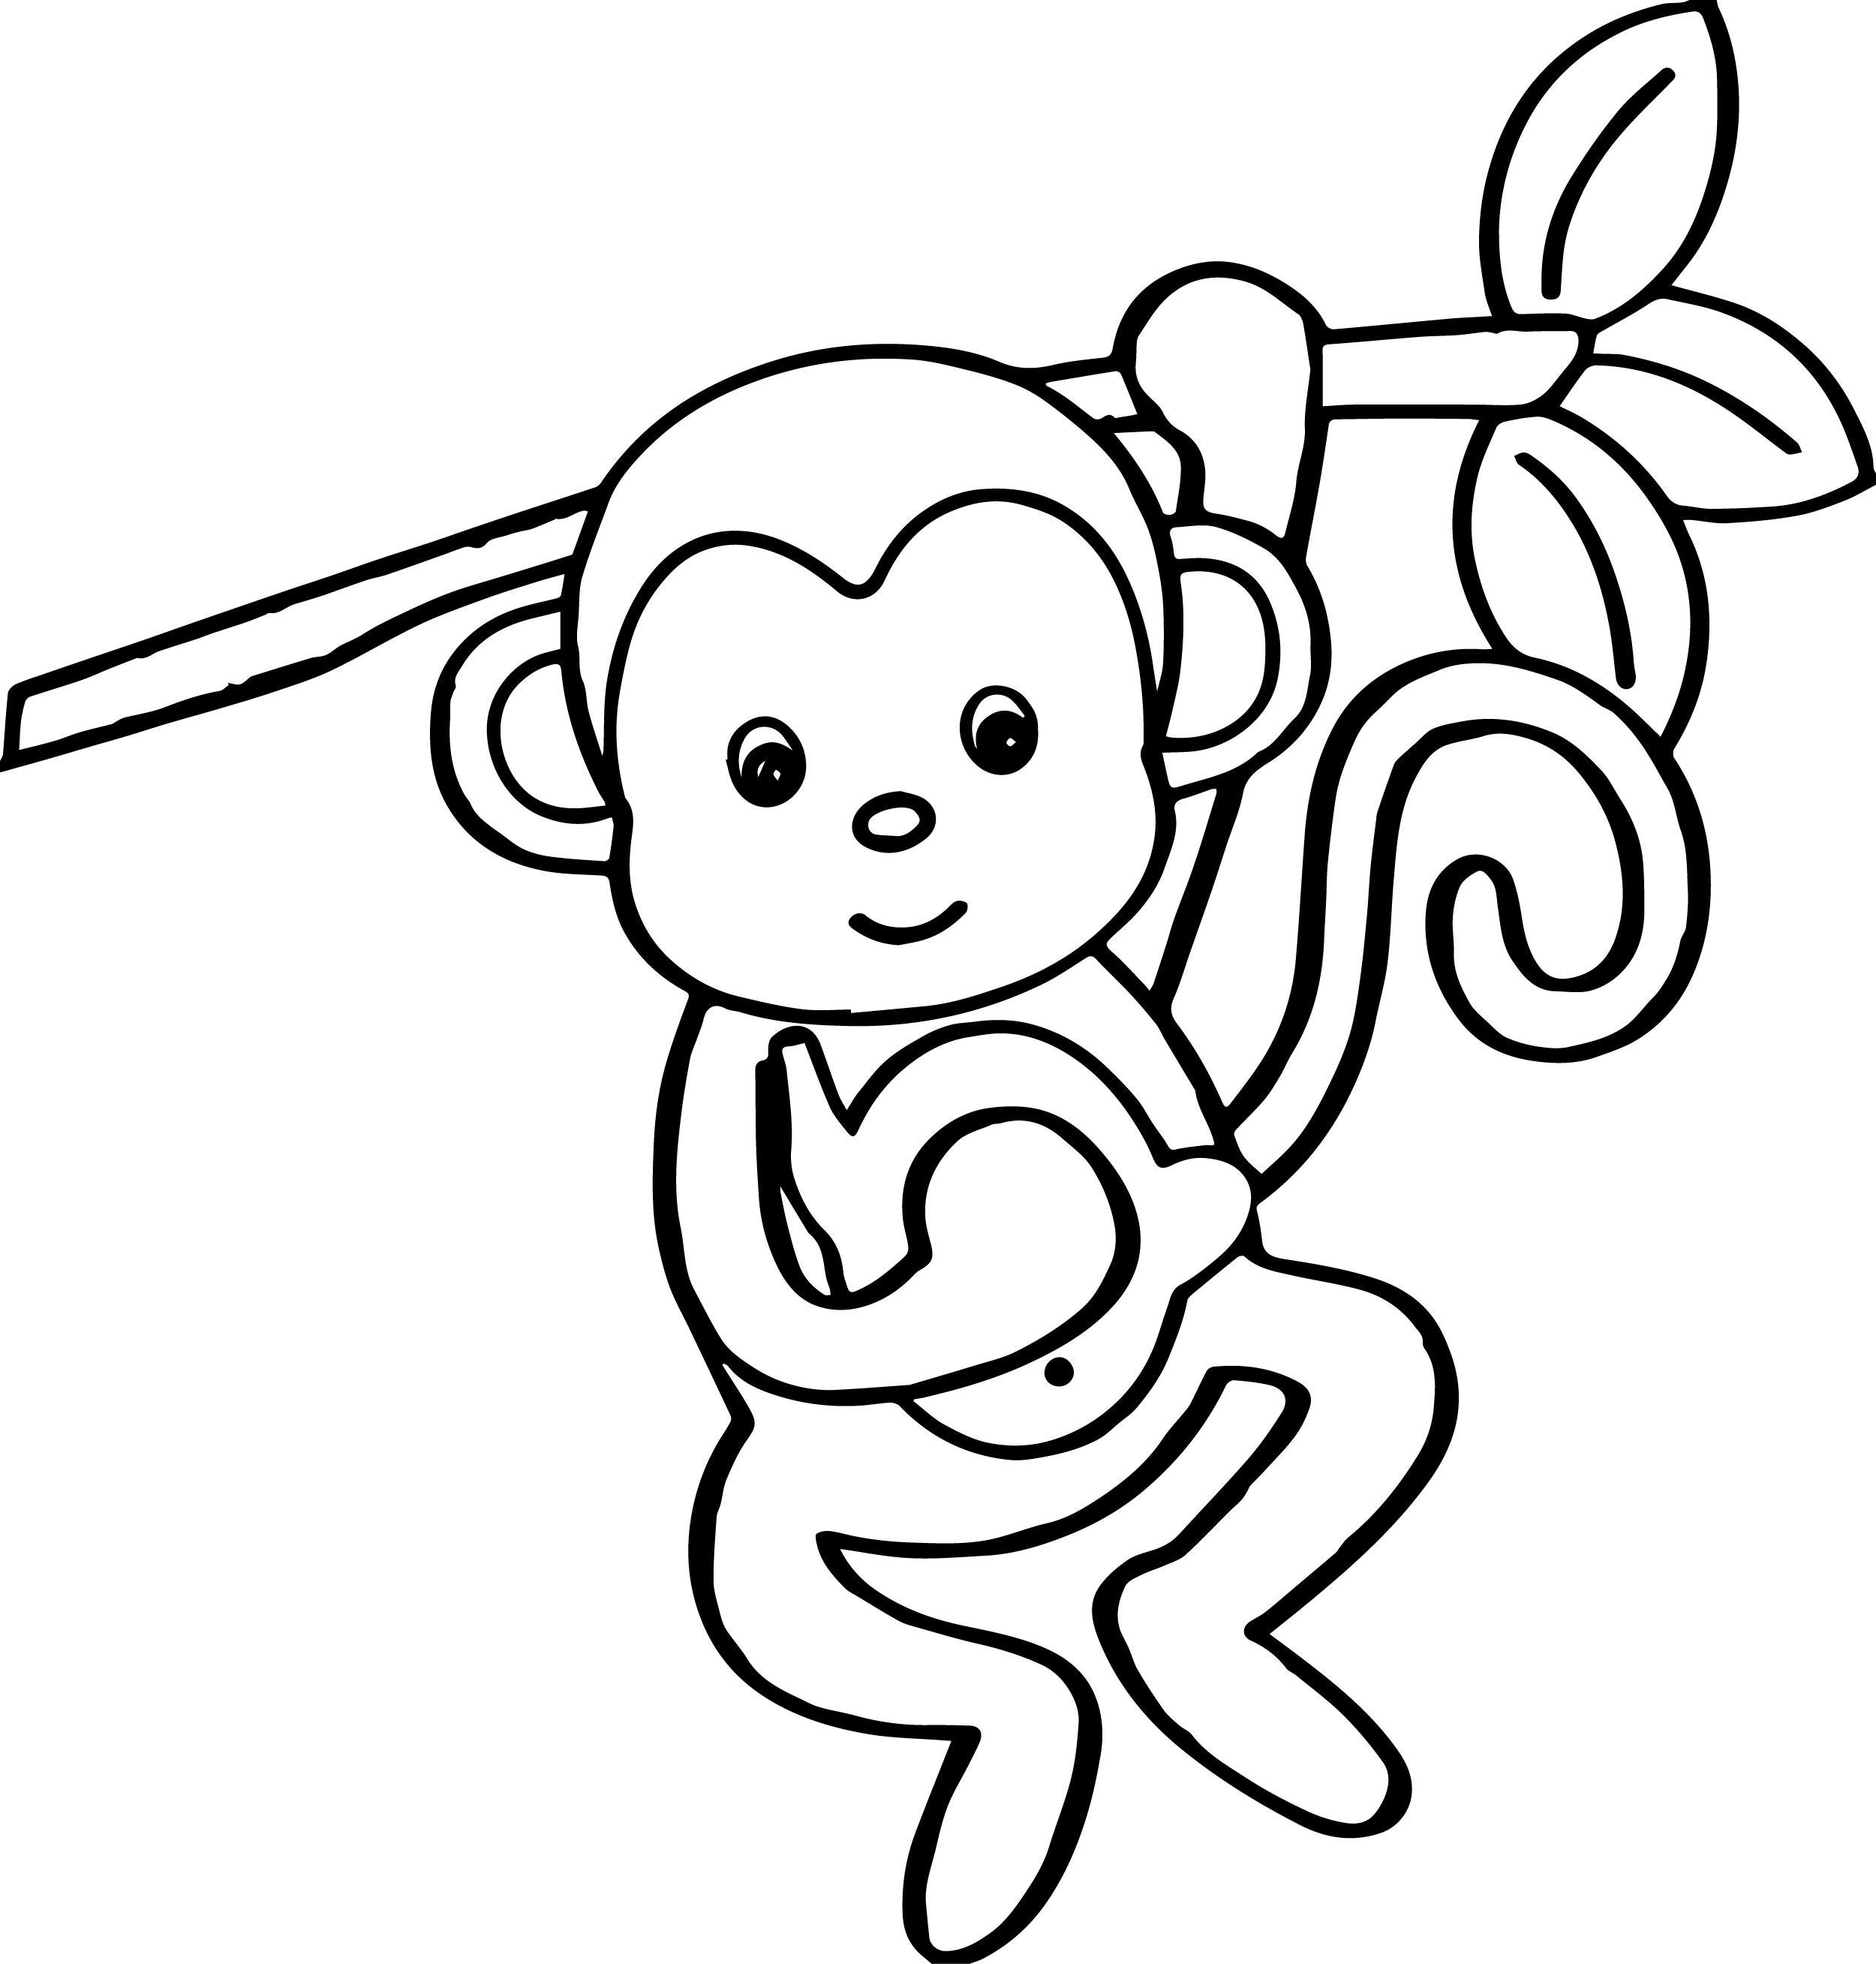 make your own coloring pages from photos - cartoon animals kids monkey coloring page